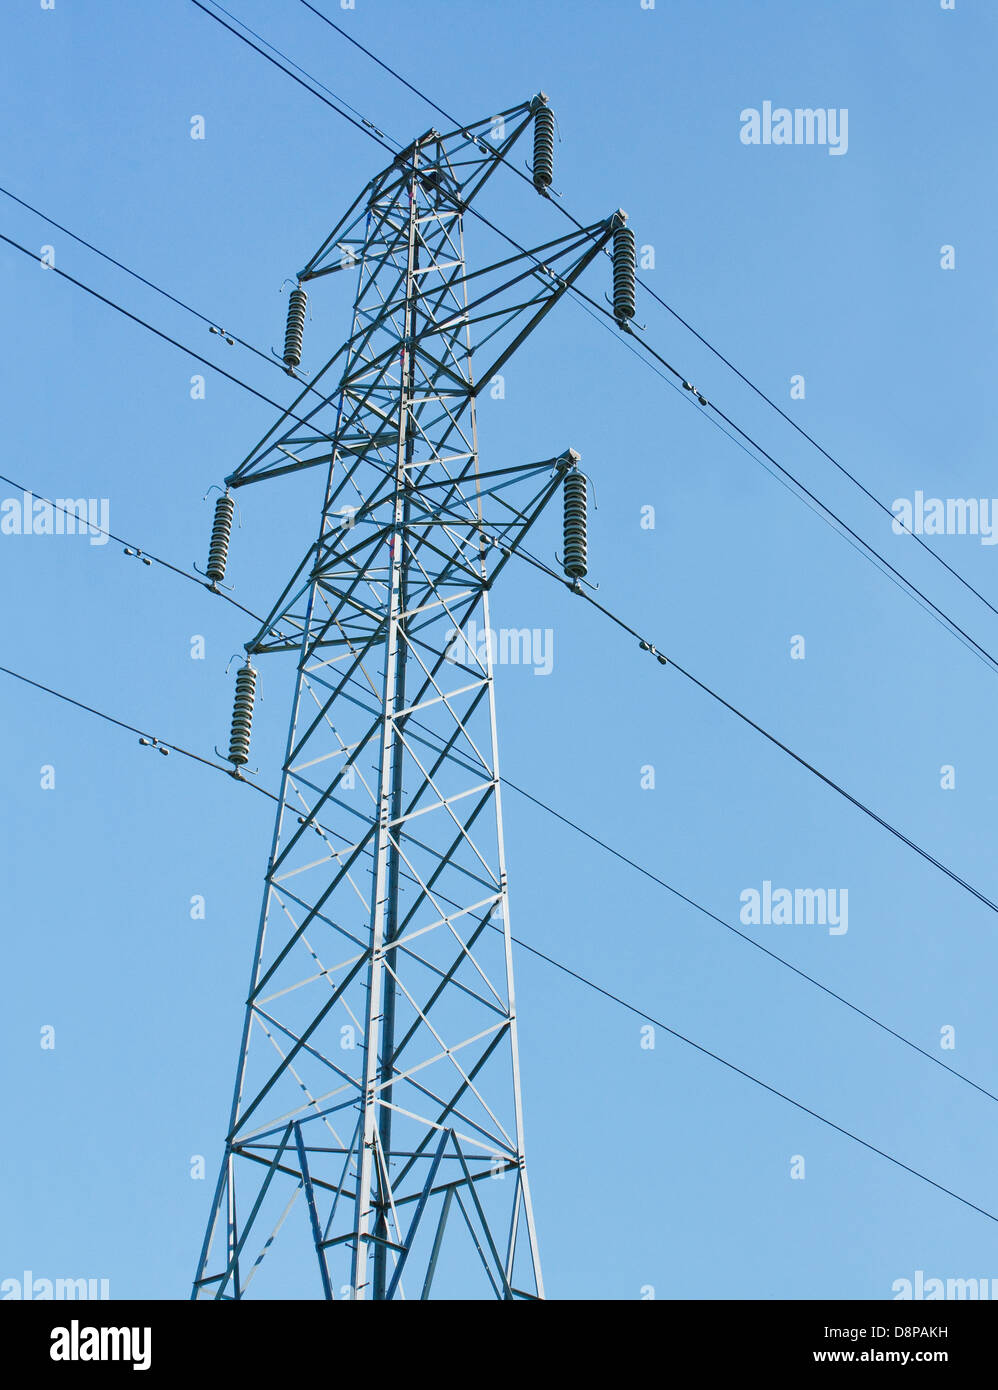 electricity pylon or transmission tower part of the national grid against a blue sky - Stock Image